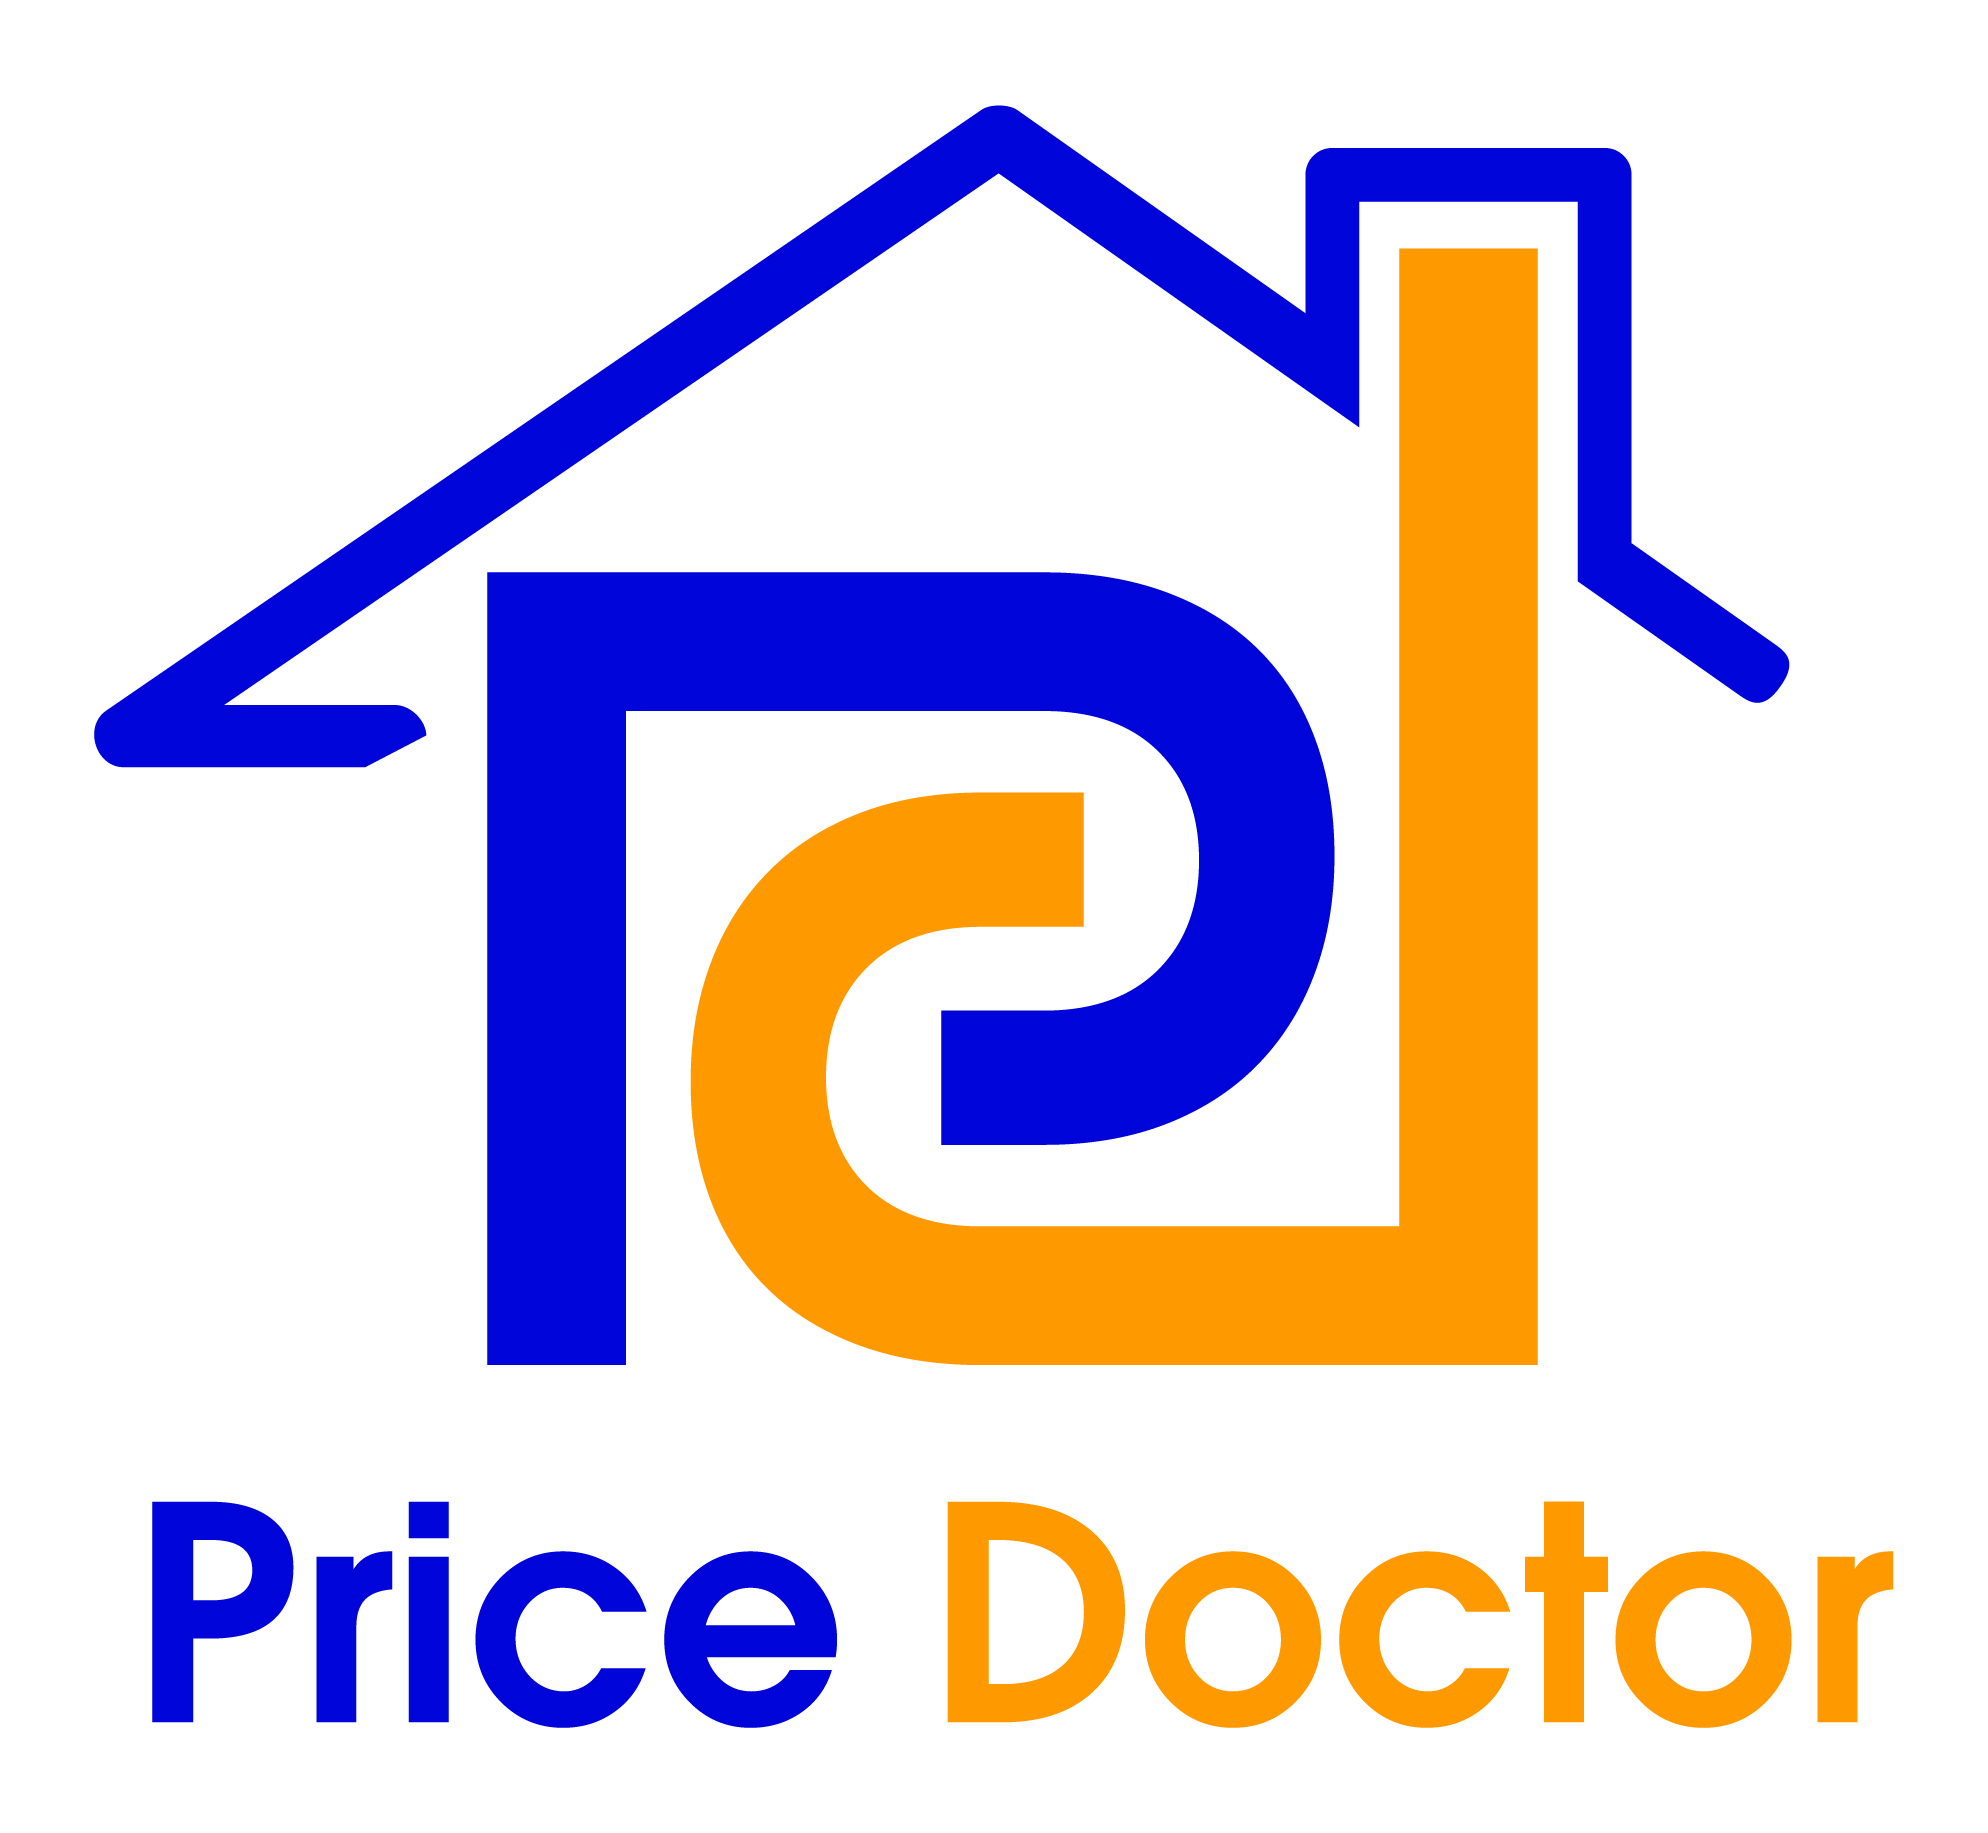 Price Doctor FINAL 01 Have you tried our new free building estimator yet?